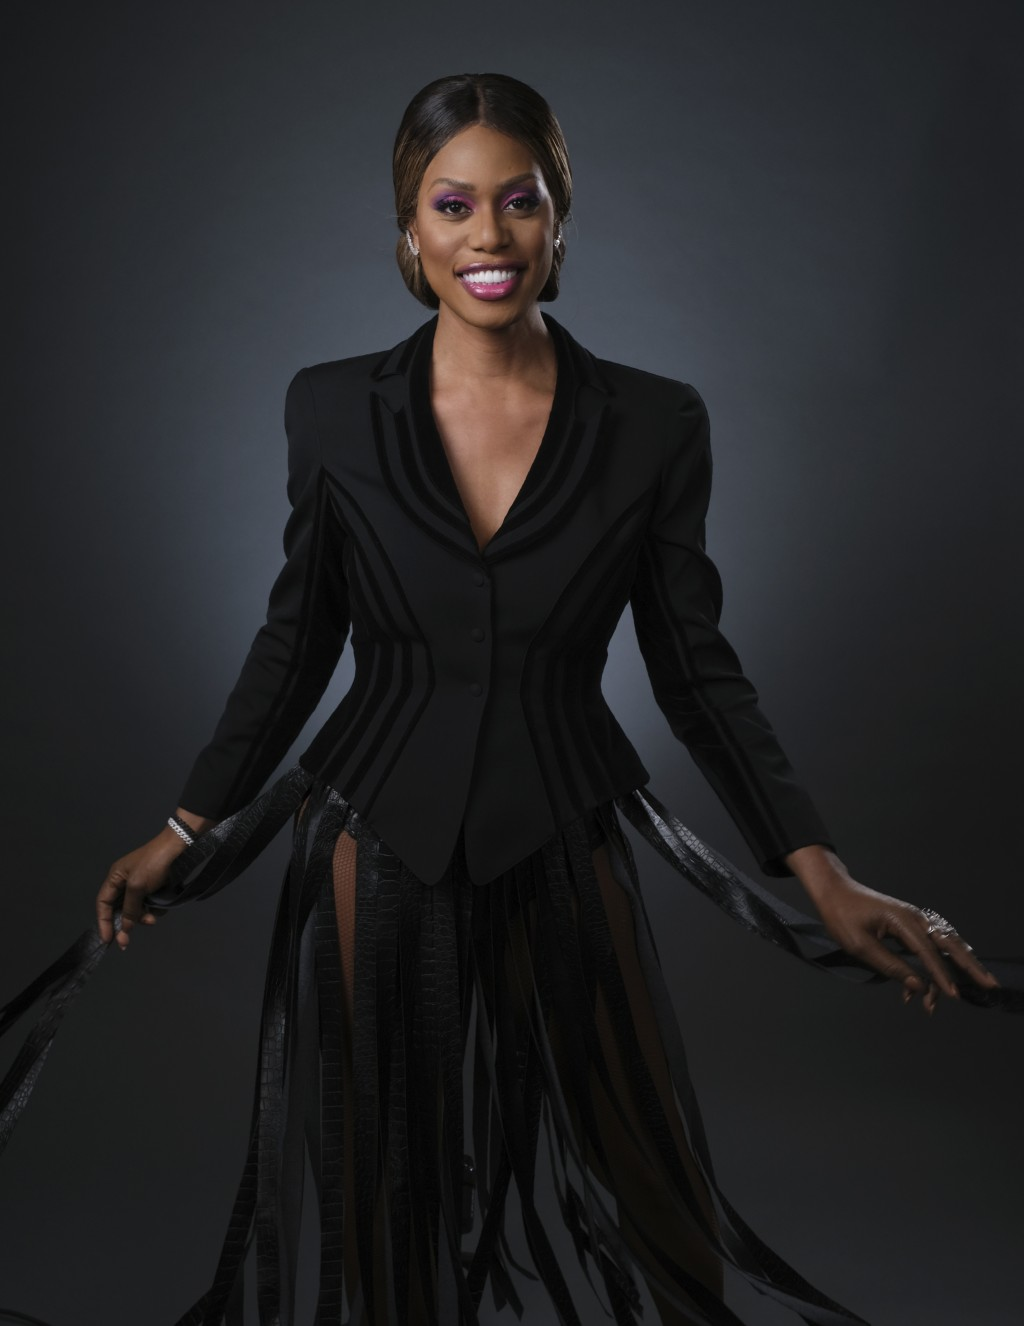 """This June 13, 2019 photo shows actress Laverne Cox posing for a portrait in Los Angeles to promote the 7th season of """"Orange is the New Black."""" The fi"""